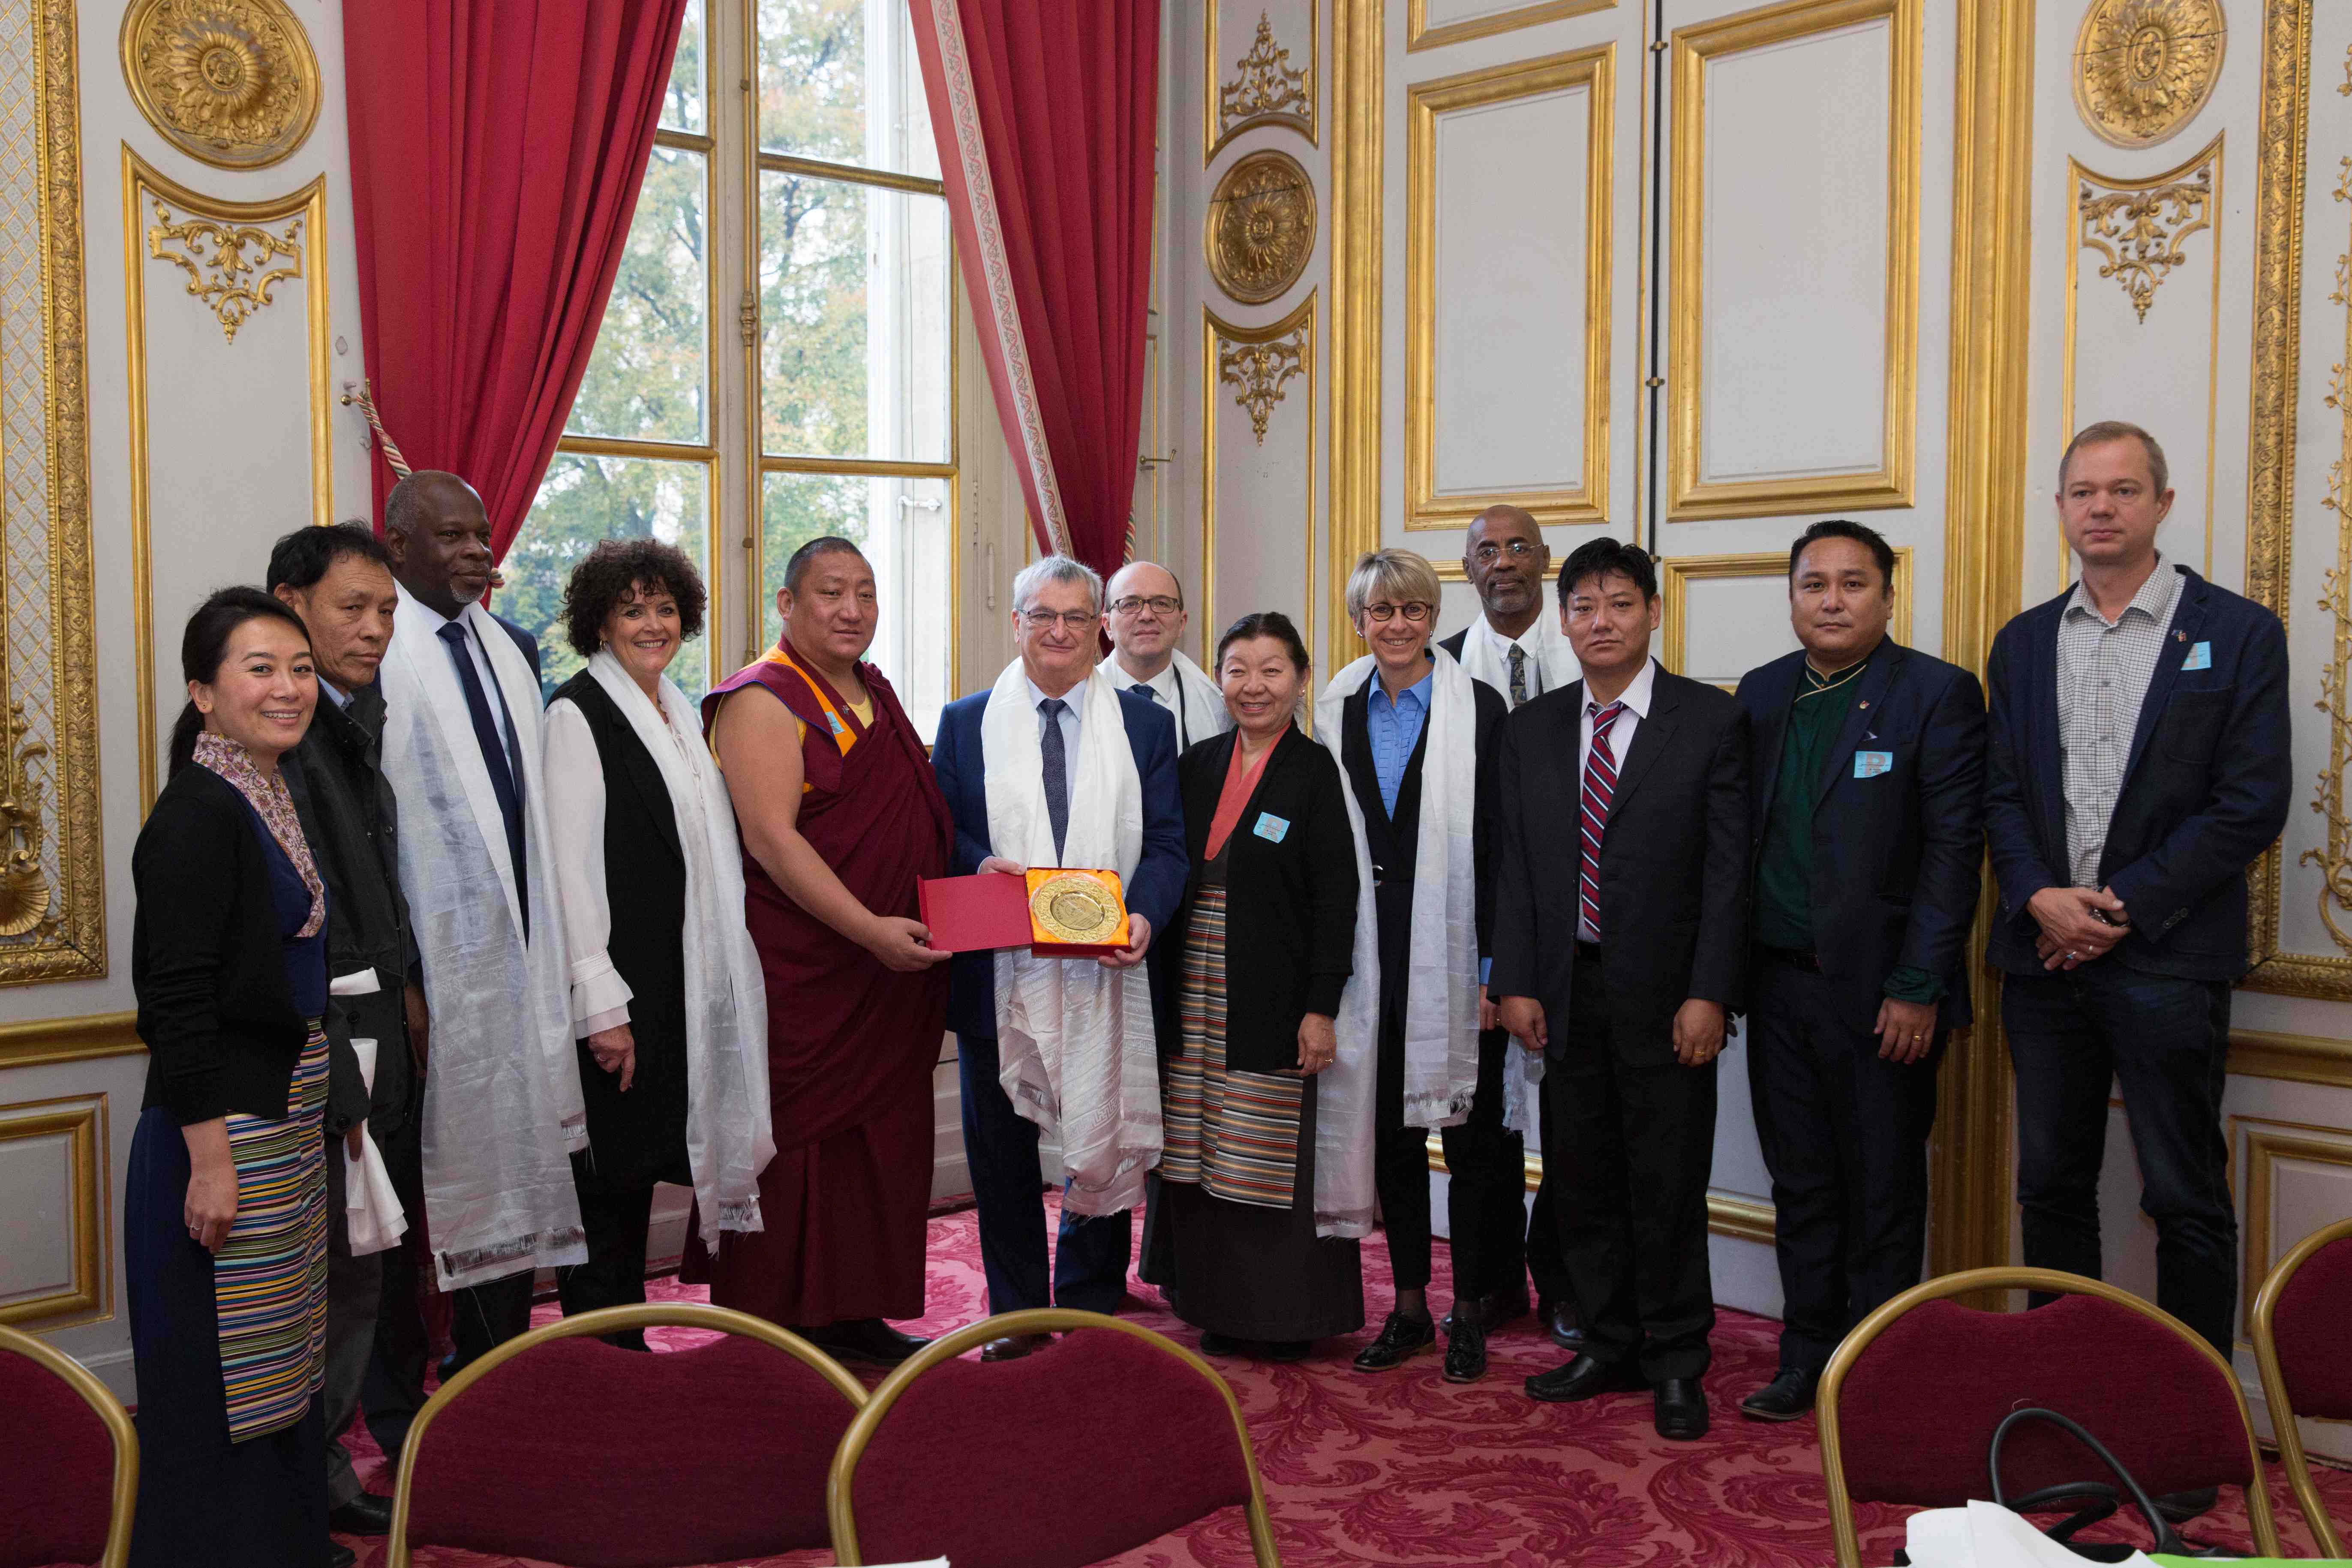 French Senators with Members of the Tibetan Parliament in Exile